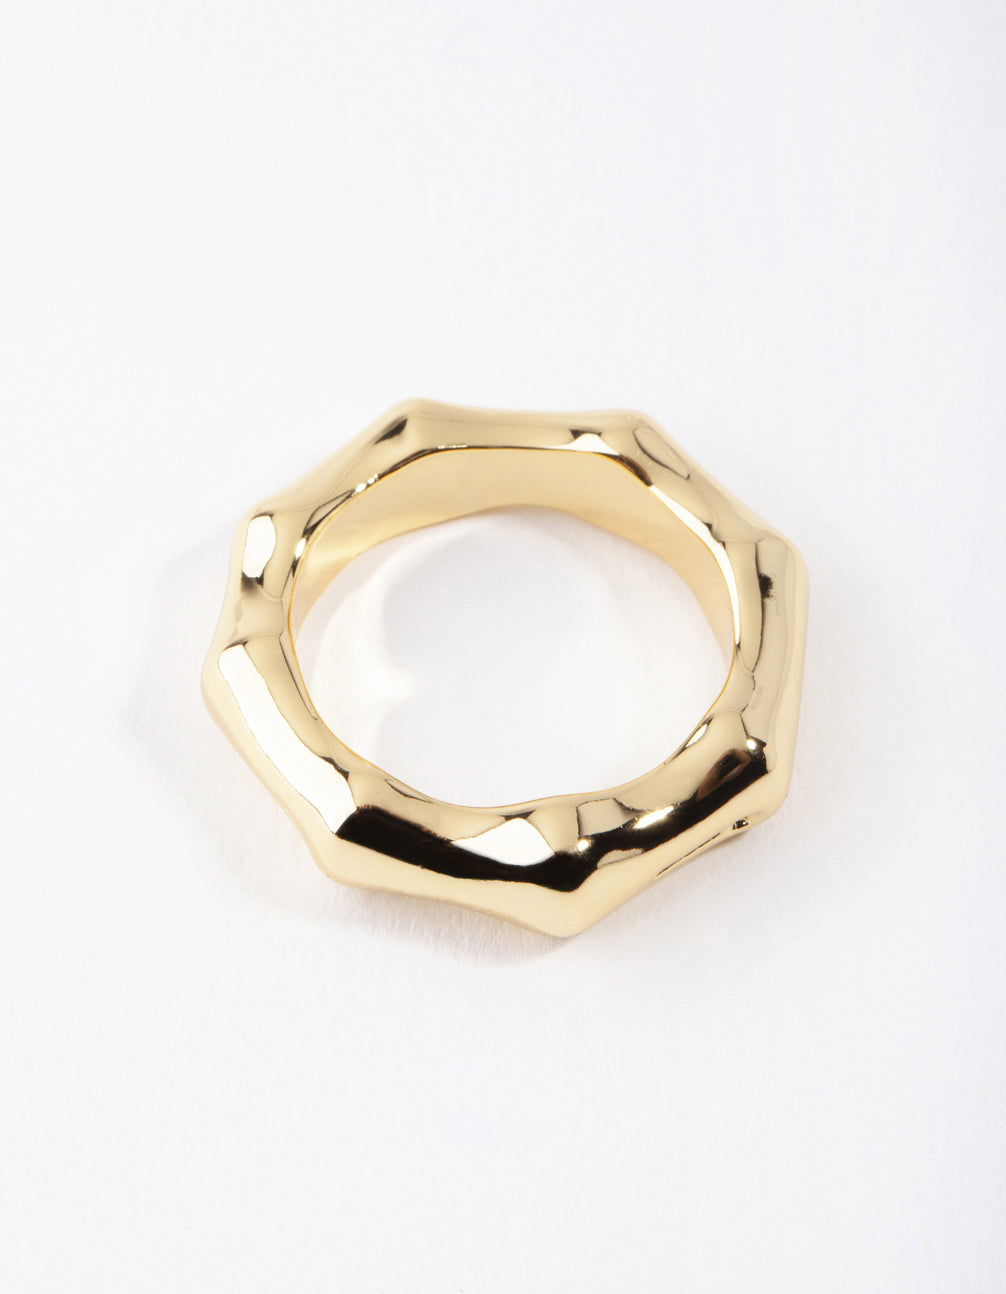 Real Gold Plated Bamboo Ring